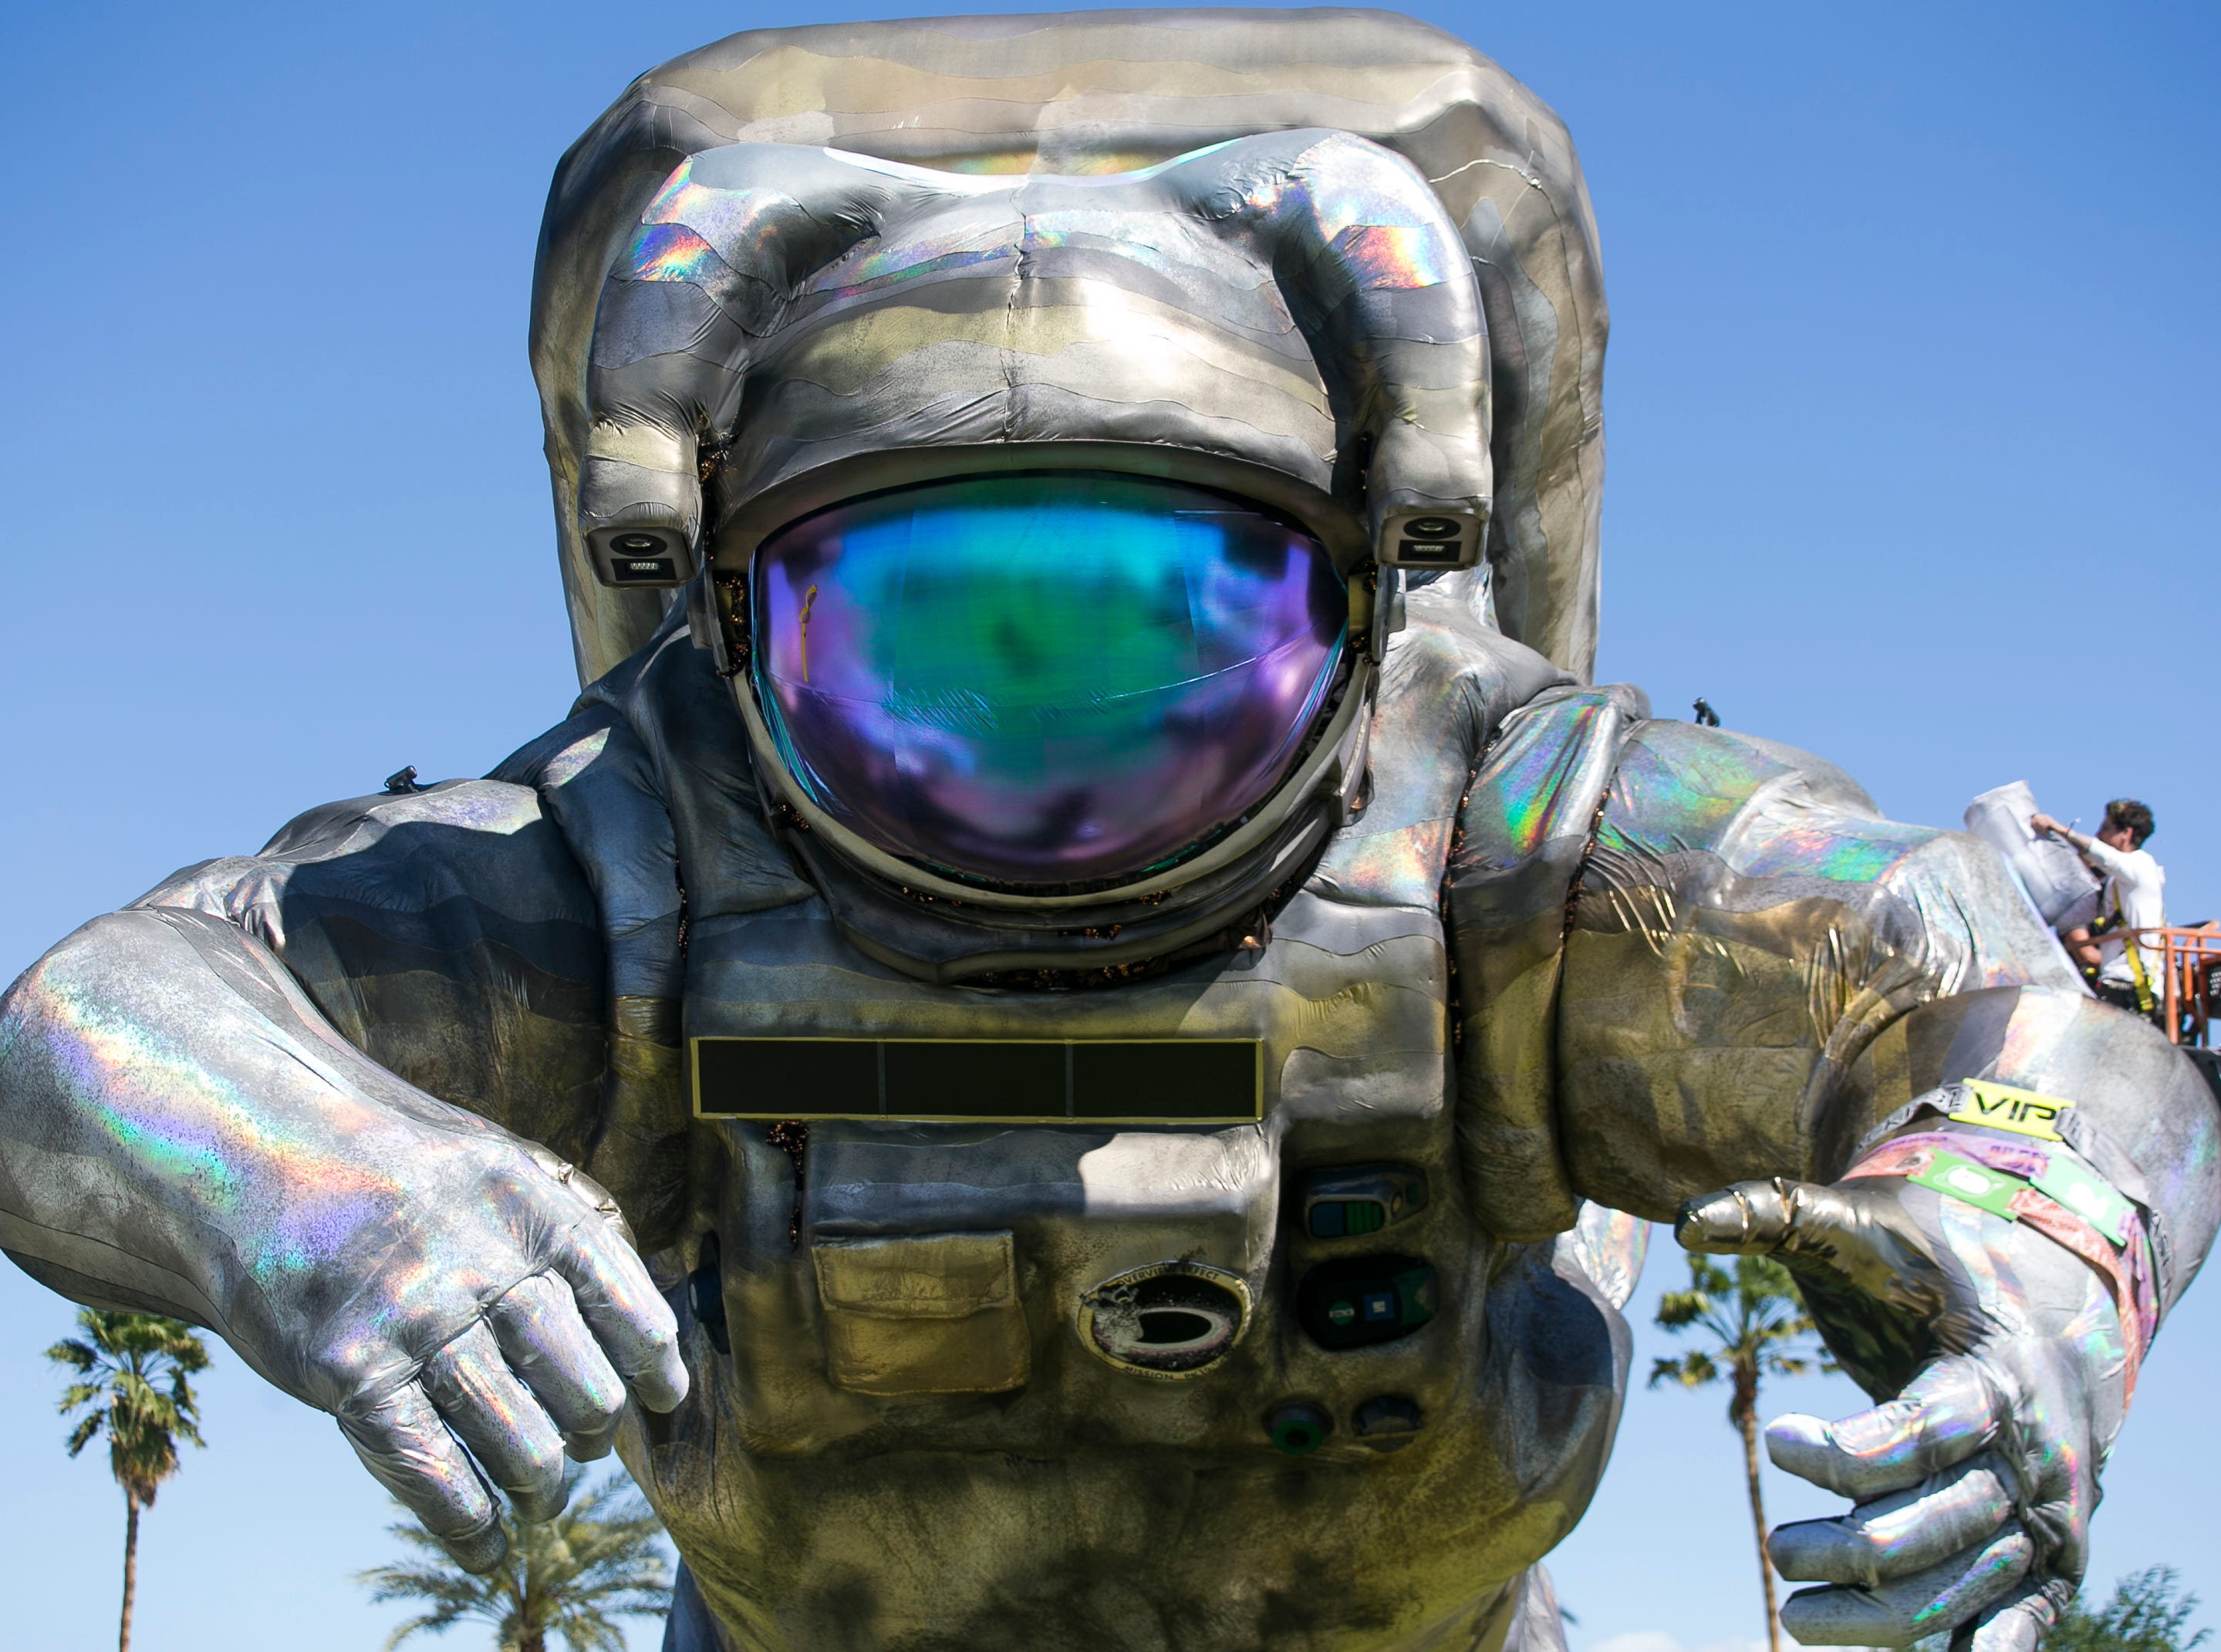 """Art installation the """"Overview Effect"""" astronaut by Poetic Kinetics looms at the Coachella Valley Music and Arts Festival in Indio, Calif. on Fri. April 12, 2019."""